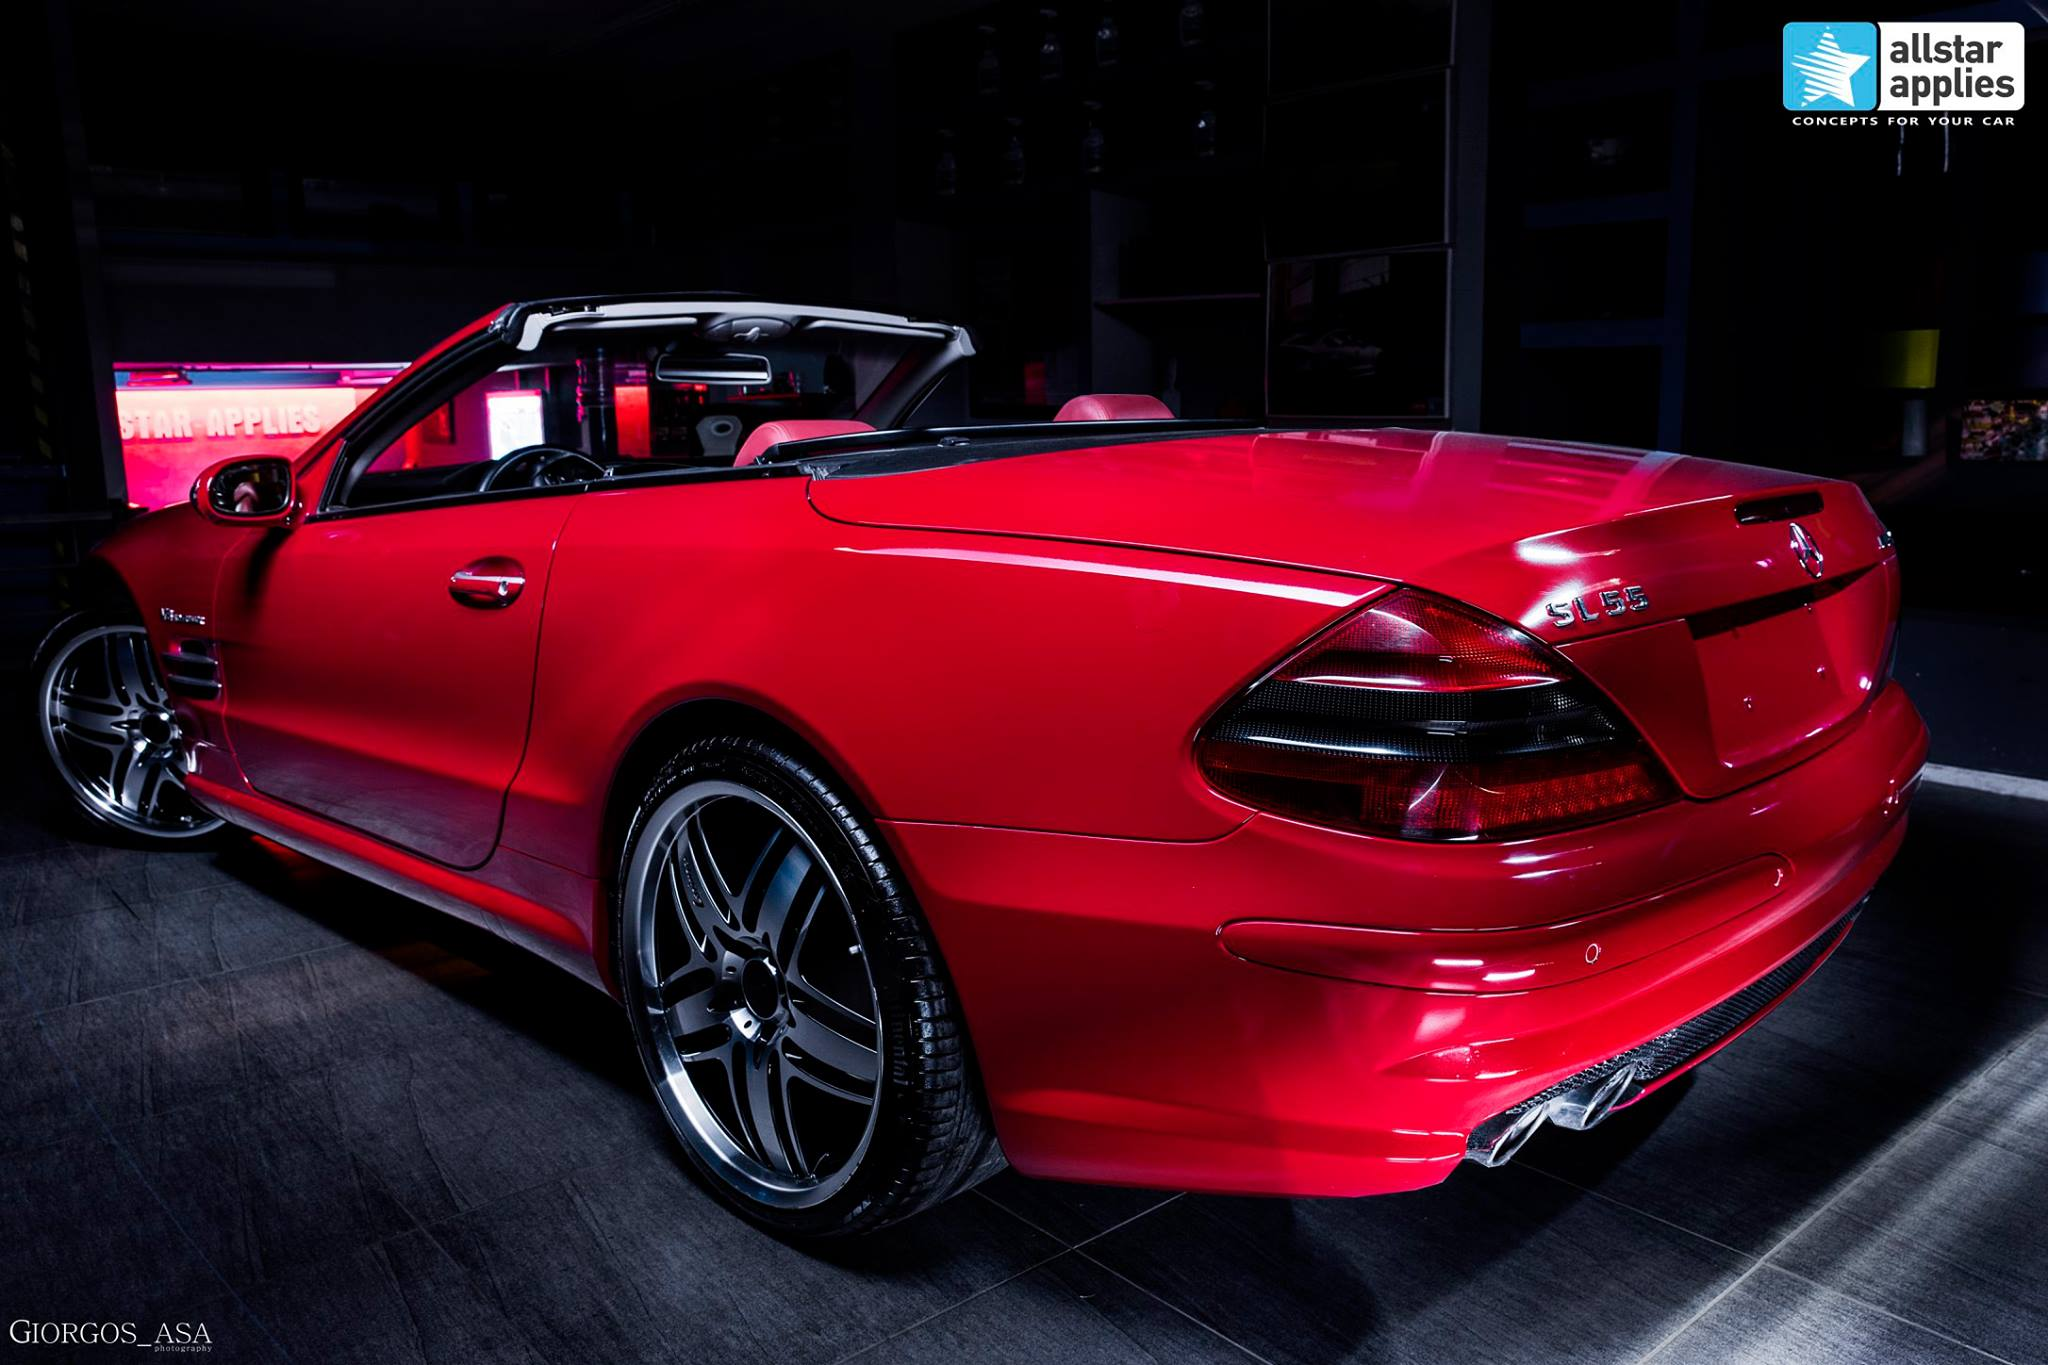 Mercedes SL55 AMG - Red Dark Metallic (1)